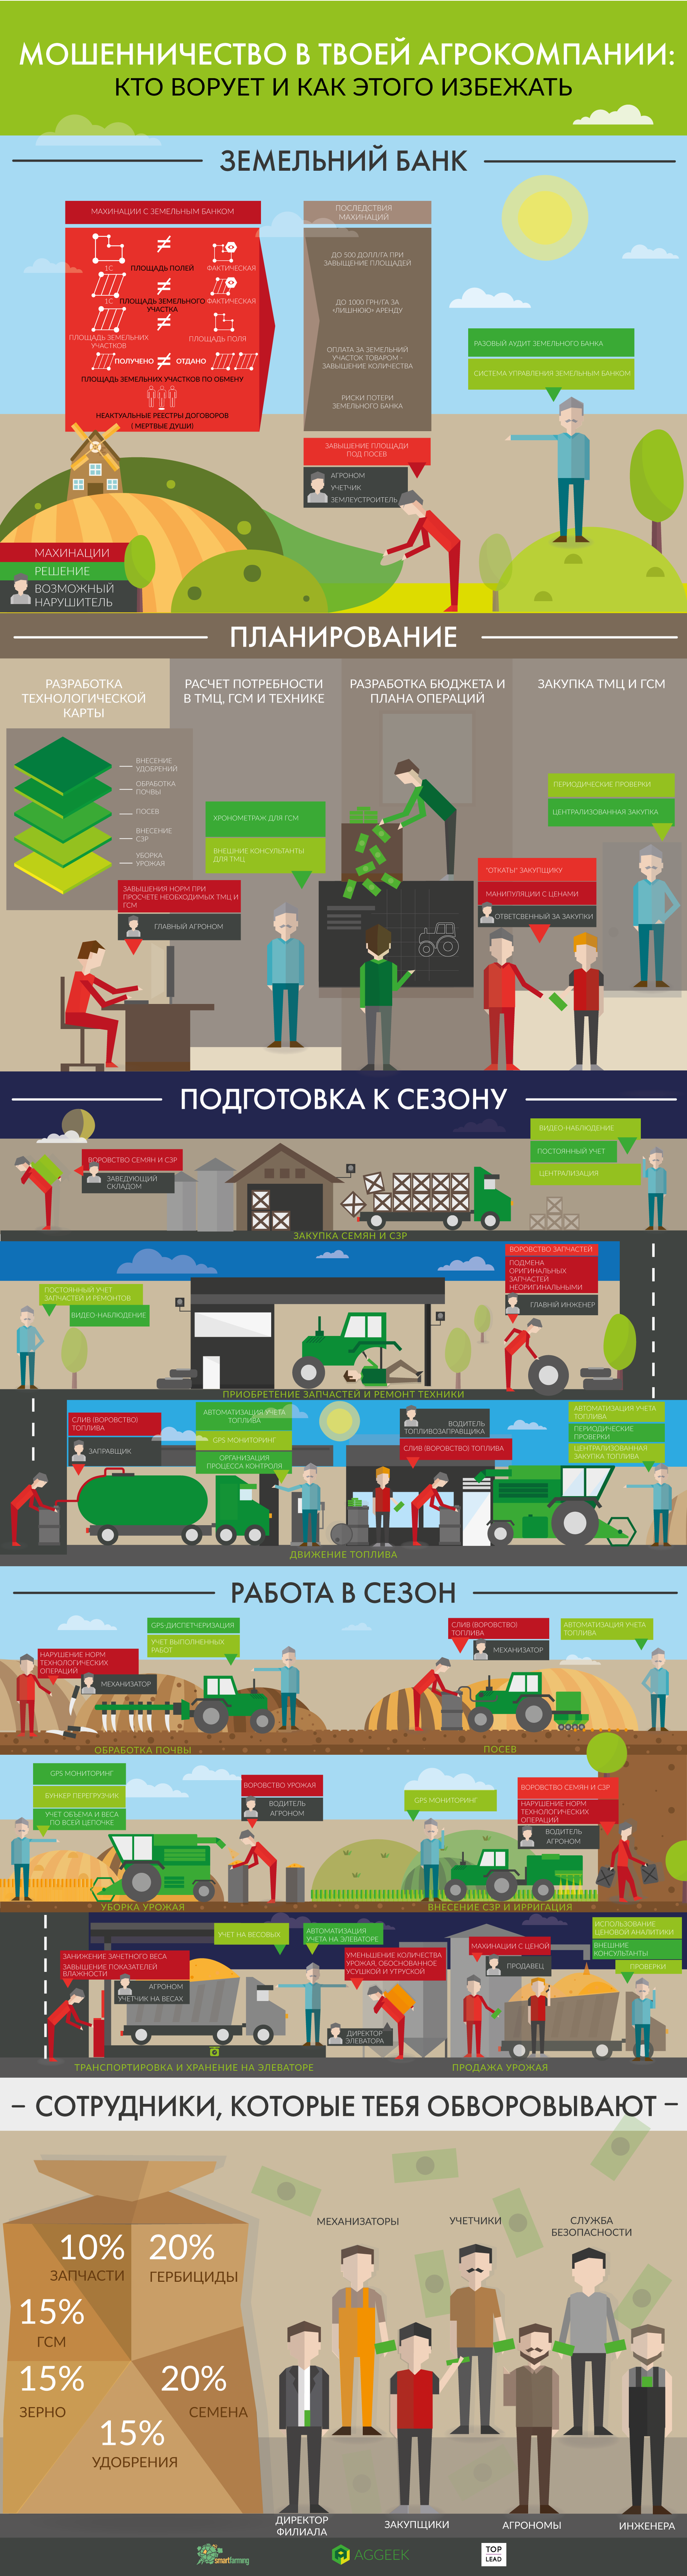 infographic about robbery